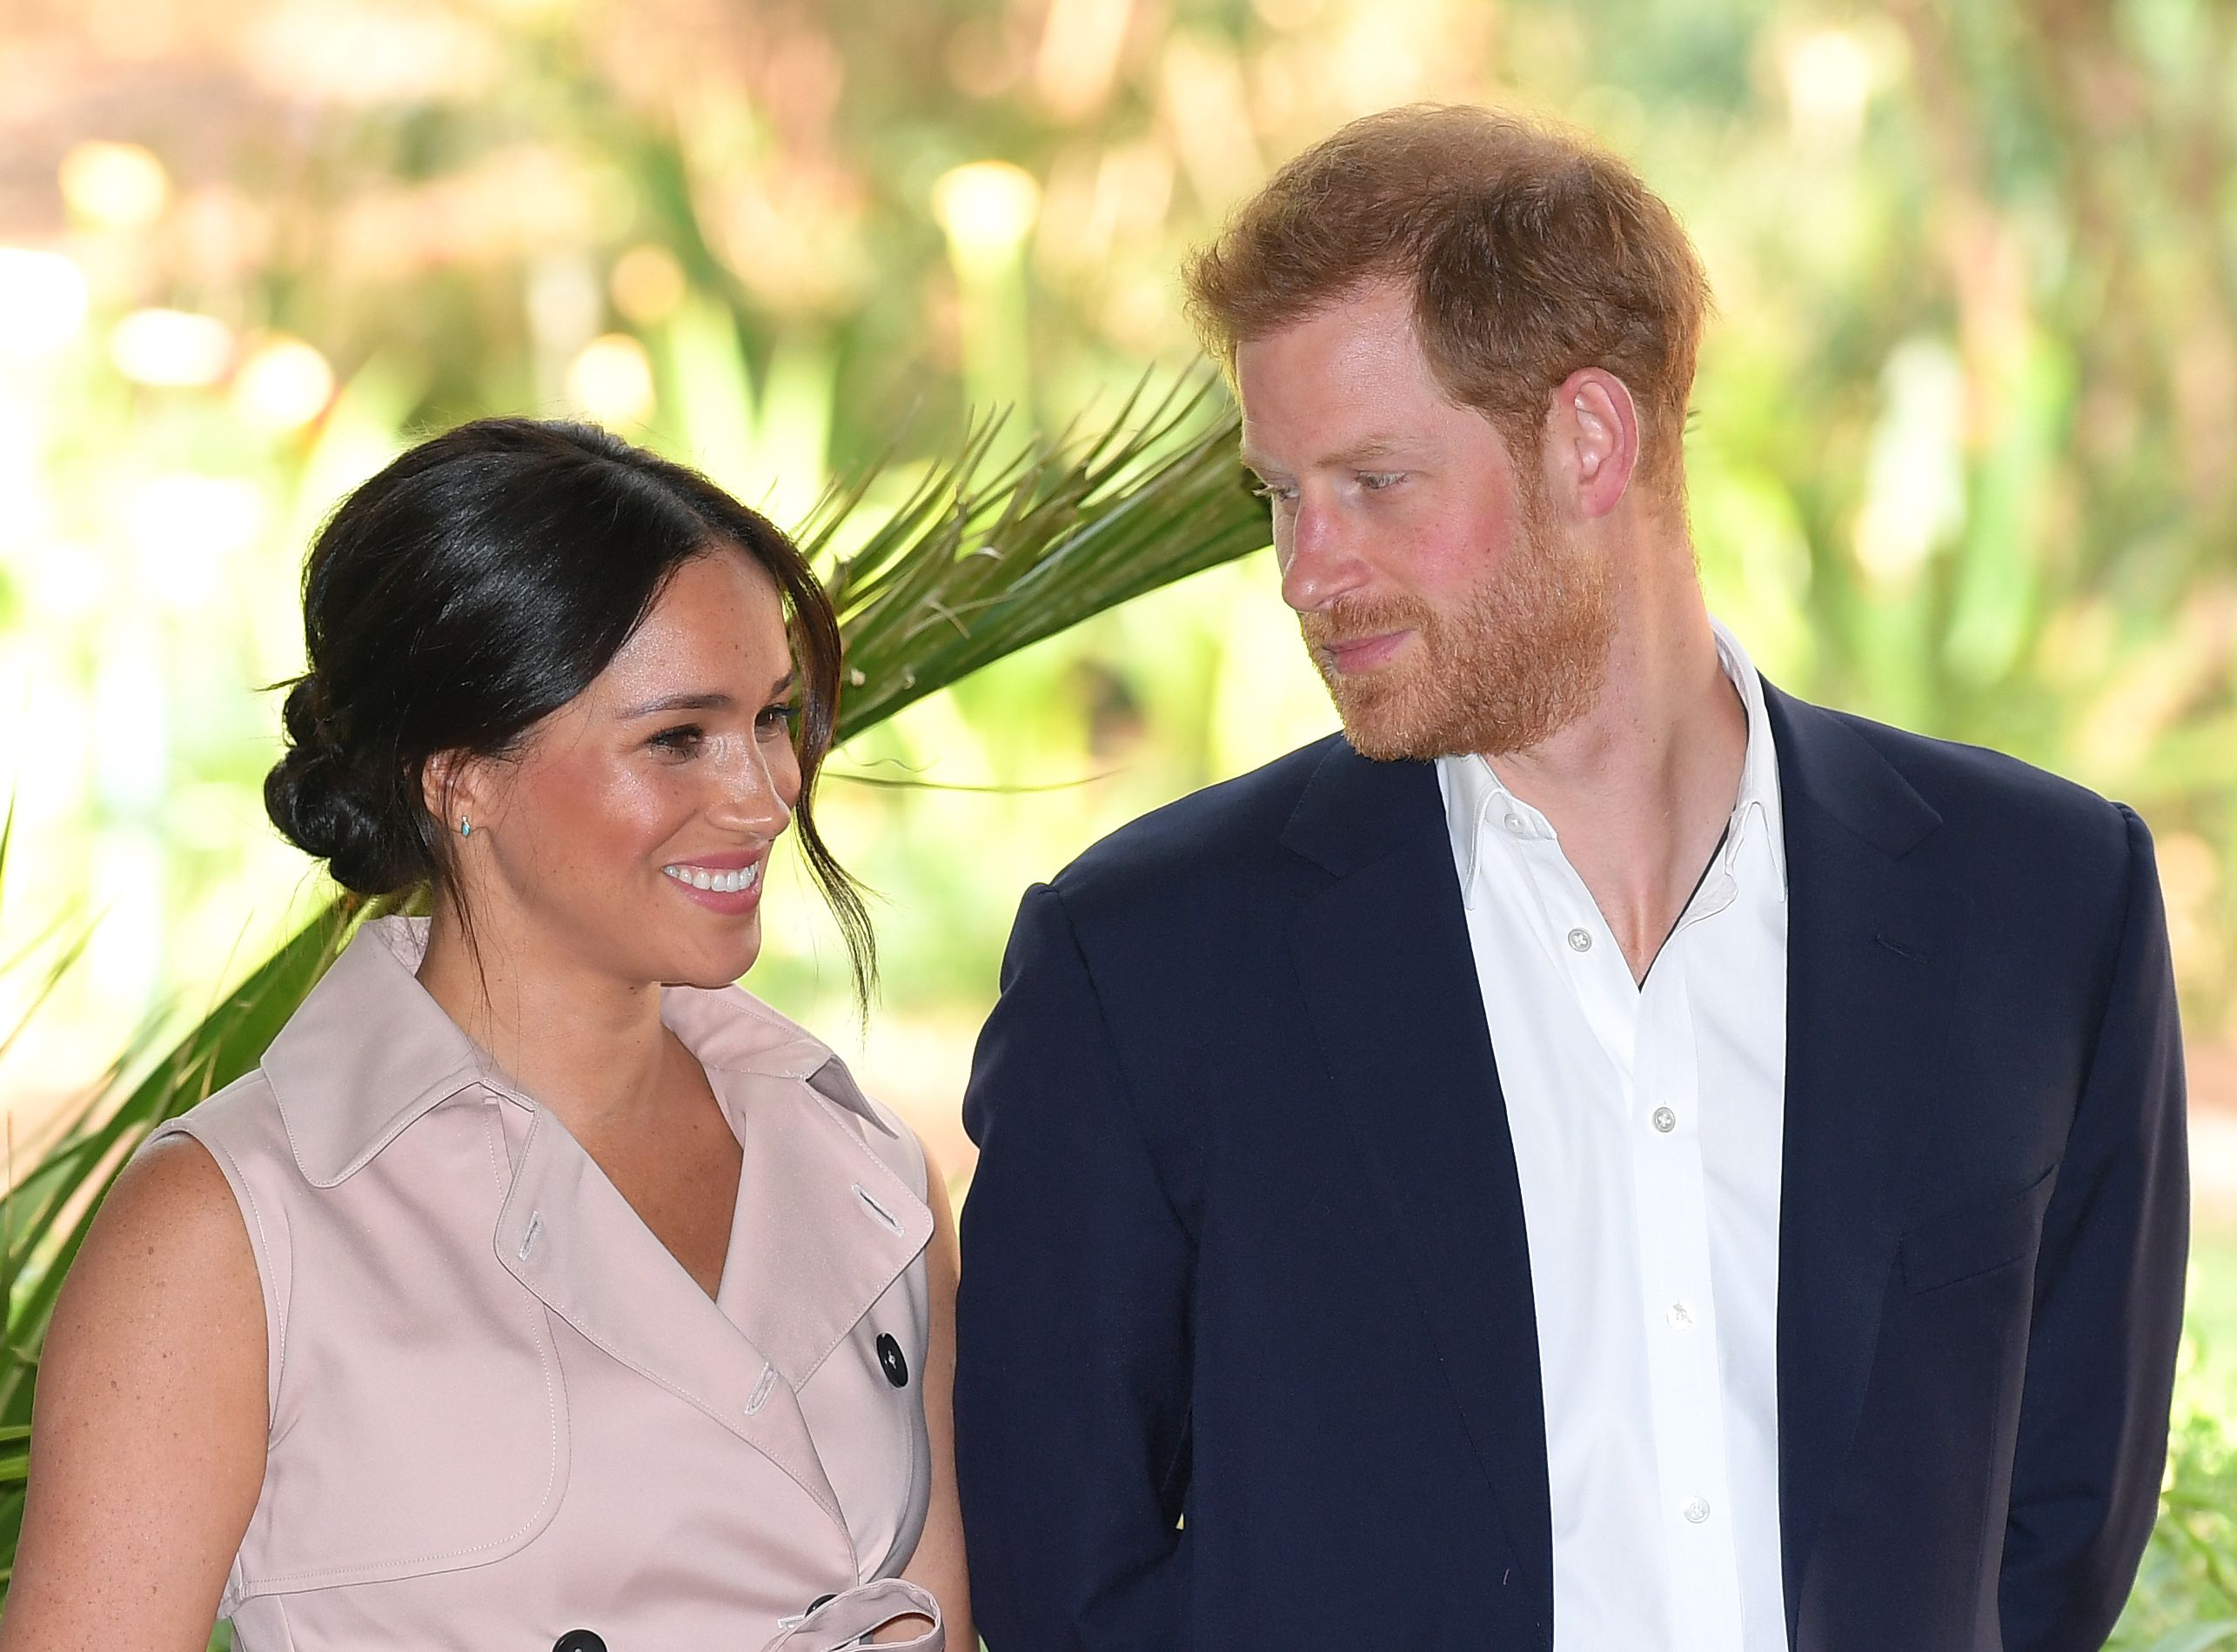 Meghan Markle and Prince Harry filmed a documentary in Africa